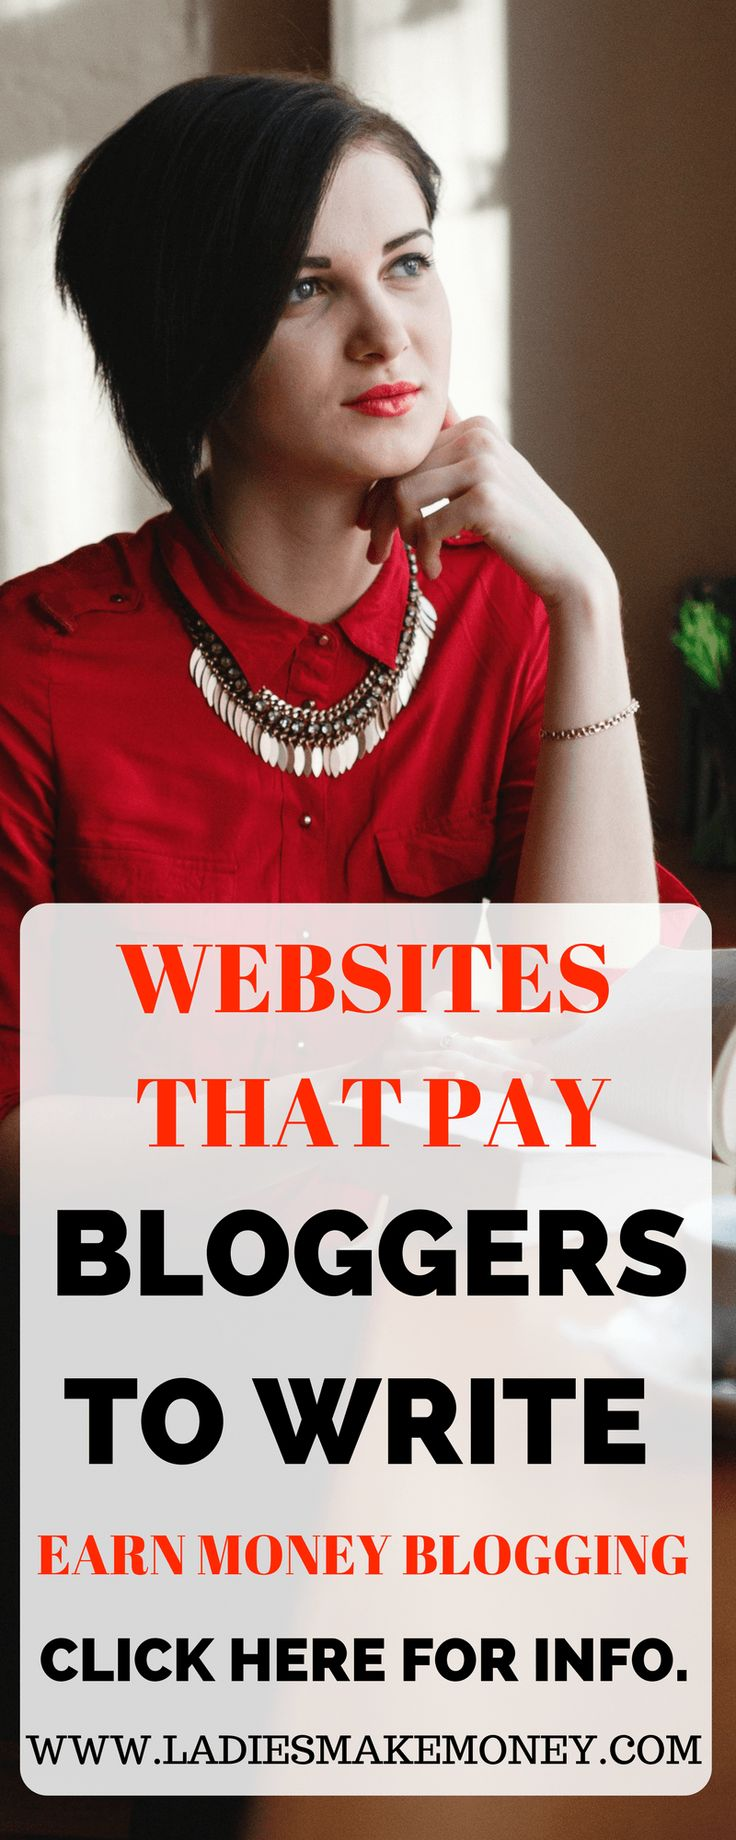 Companies And Websites That Pay For Your Writing - Make for Money Blogging - Passive Income - Affiliates - Content - Social Media - Management - SEO - Promote | Freelance blogger, get paid to write. How to make money as a freelance blogger. Here are 5 places to find freelance work for bloggers. Freelance writer, copy writer and blogger for hire. Freelance blogger jobs, freelance blogging jobs for beginners, Blog writing jobs from home, blogging jobs from home, hire a freelance bloggers. Grow…